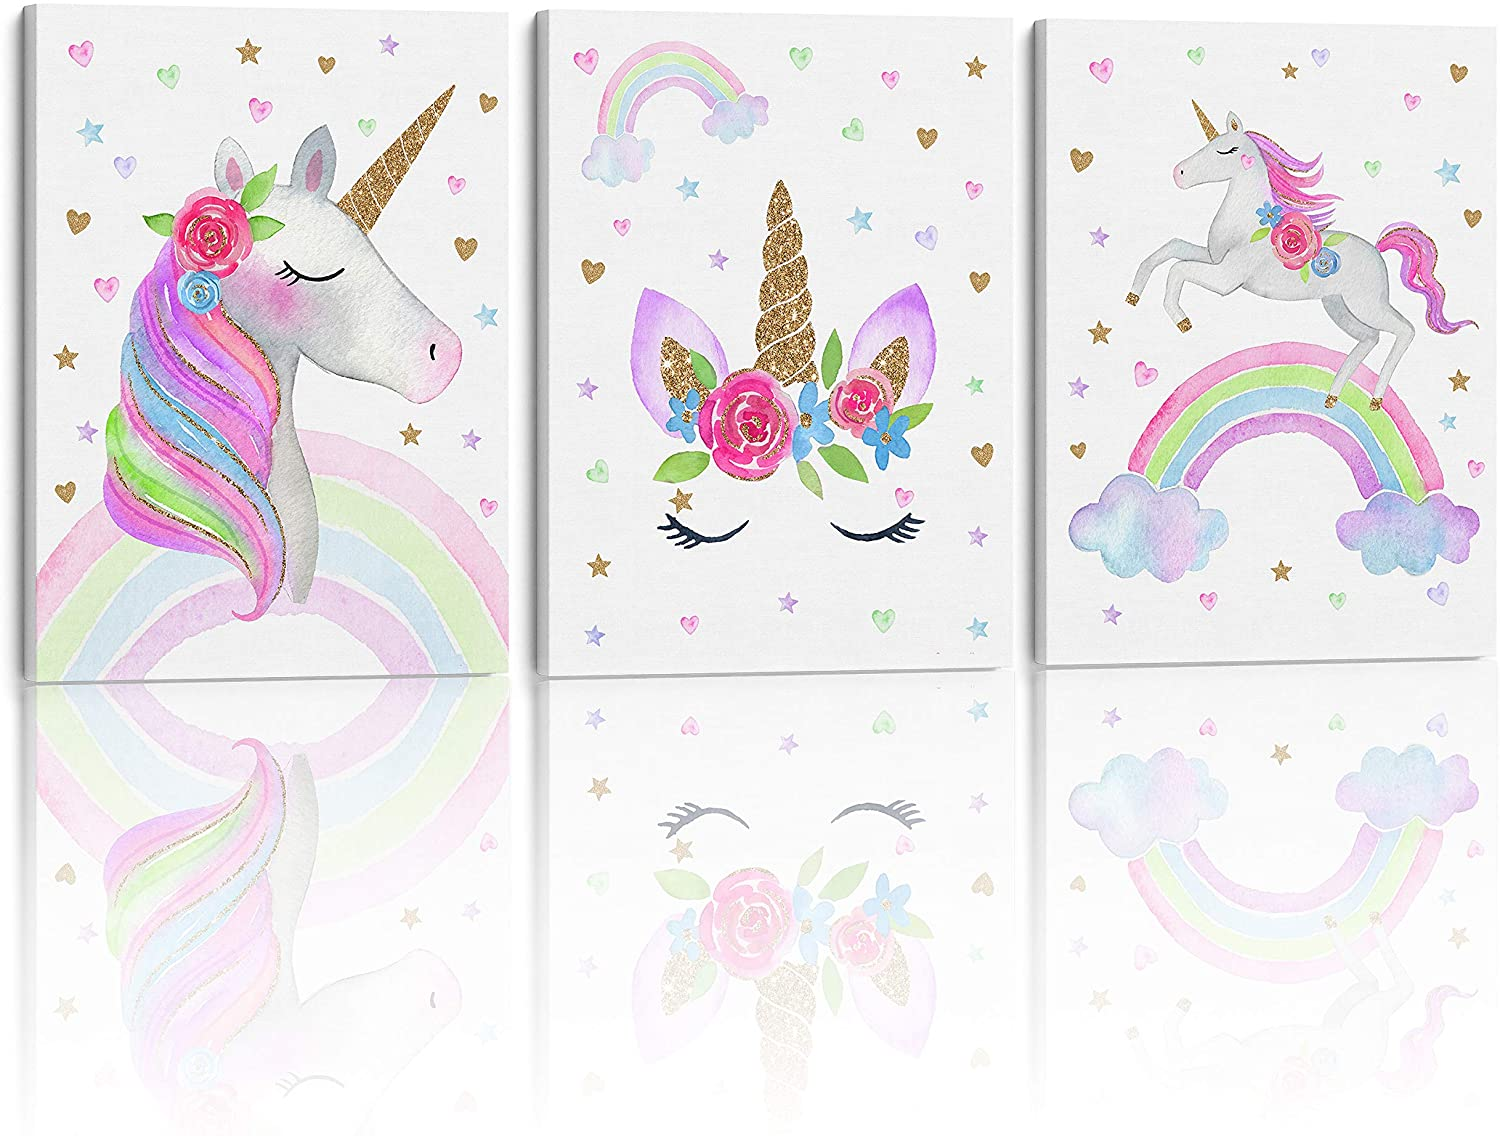 Something Unicorn - Stretched/Framed, Ready to Hang Canvas Wall Art. Super Cute Water Color Unicorn Prints for Nursery or Girl's Bedroom Decor. Set of 3. 12x16in - Gold Glitter Unicorn (Over The Rainbow Version)